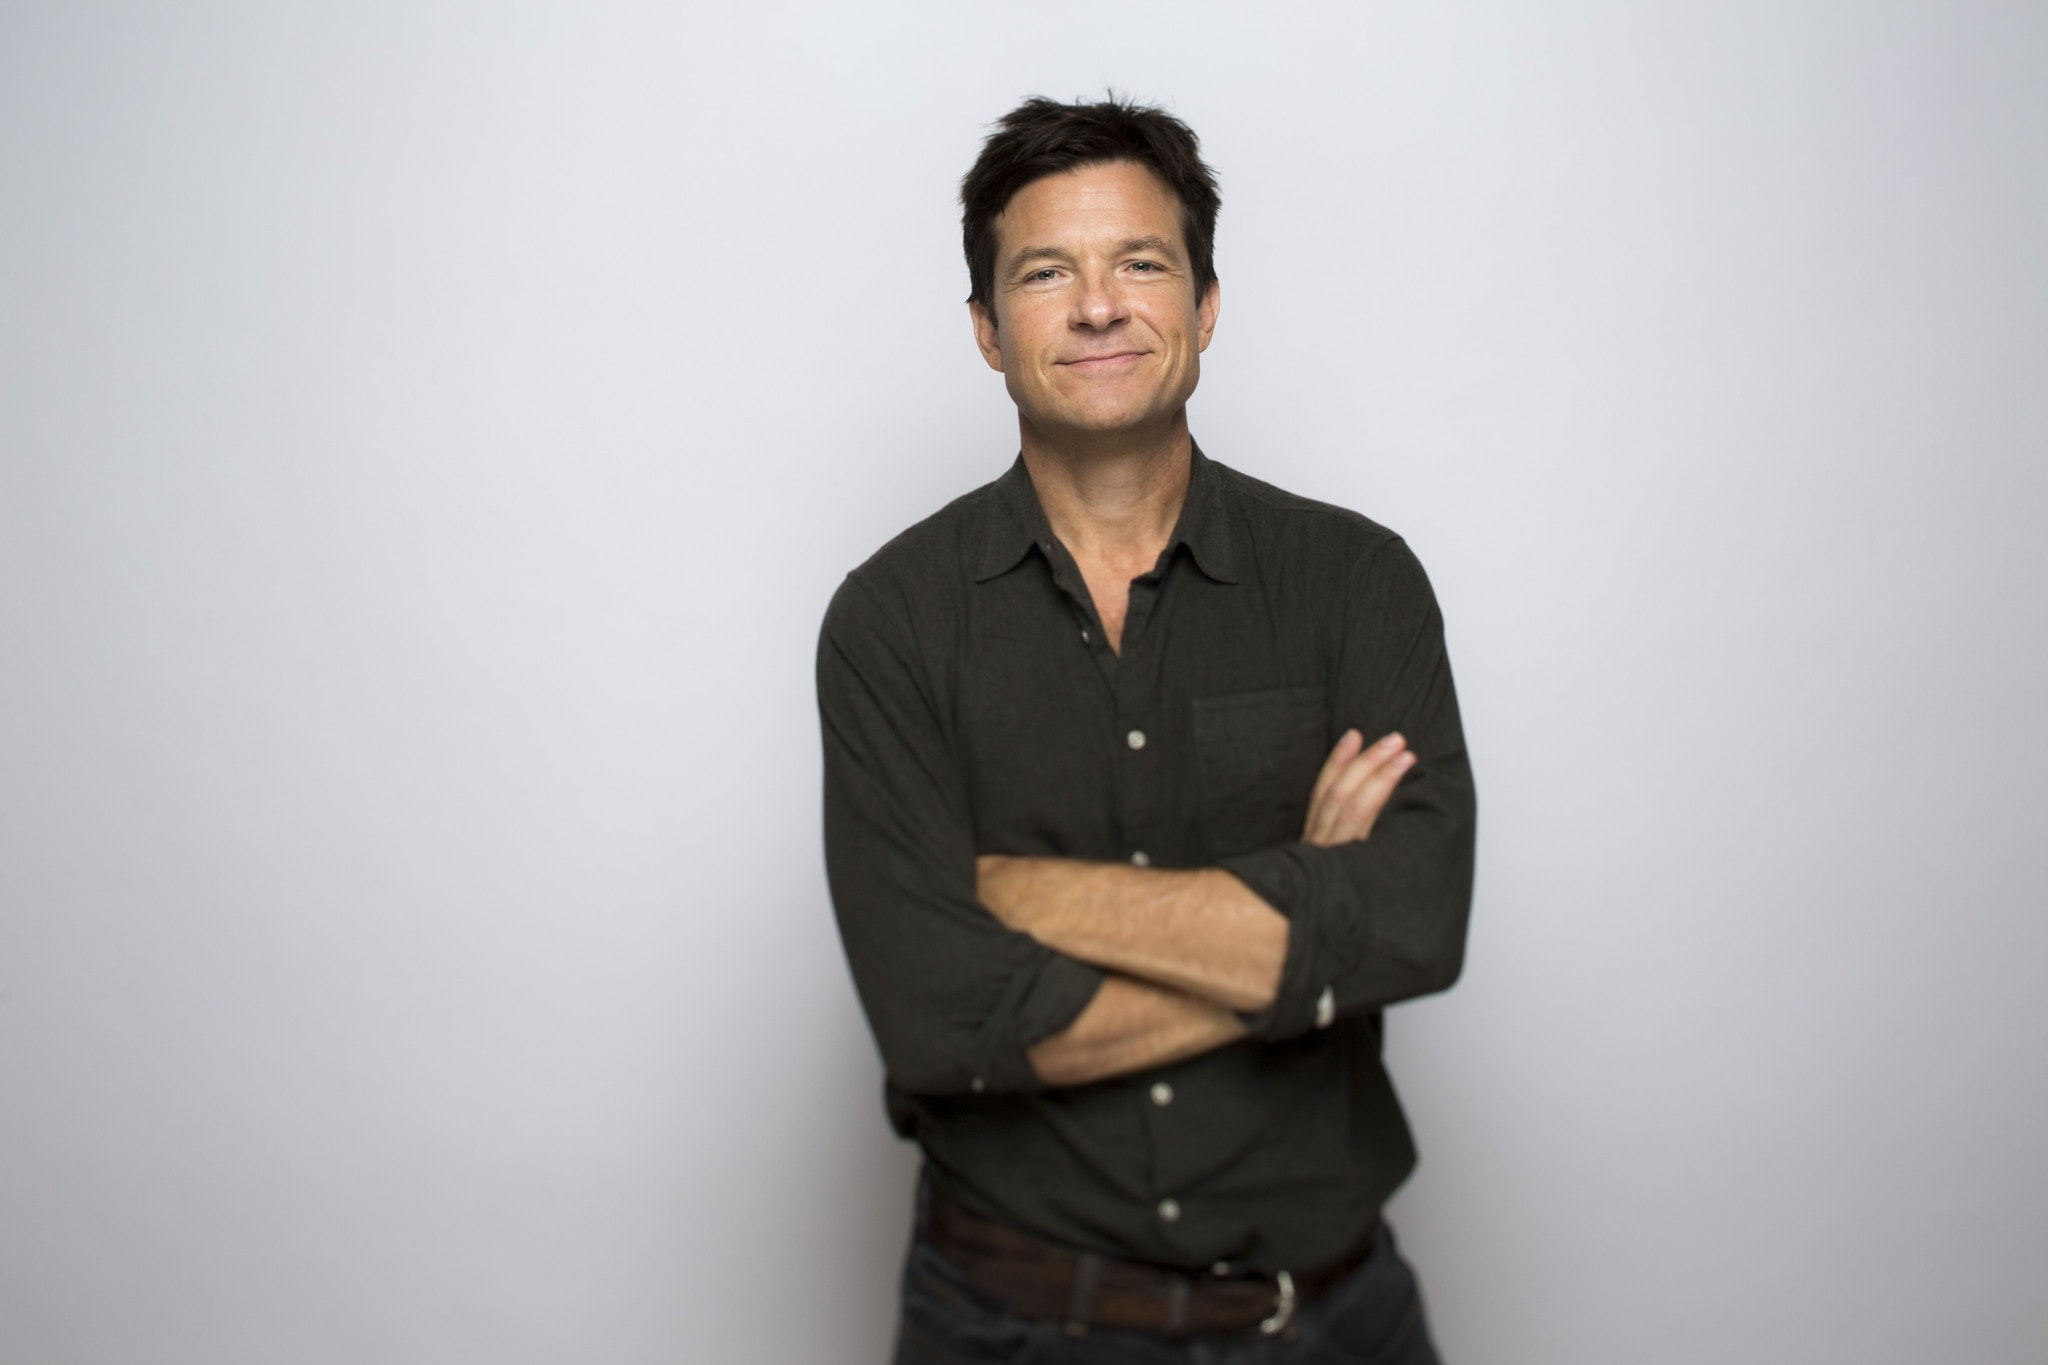 Jason Bateman Backgrounds